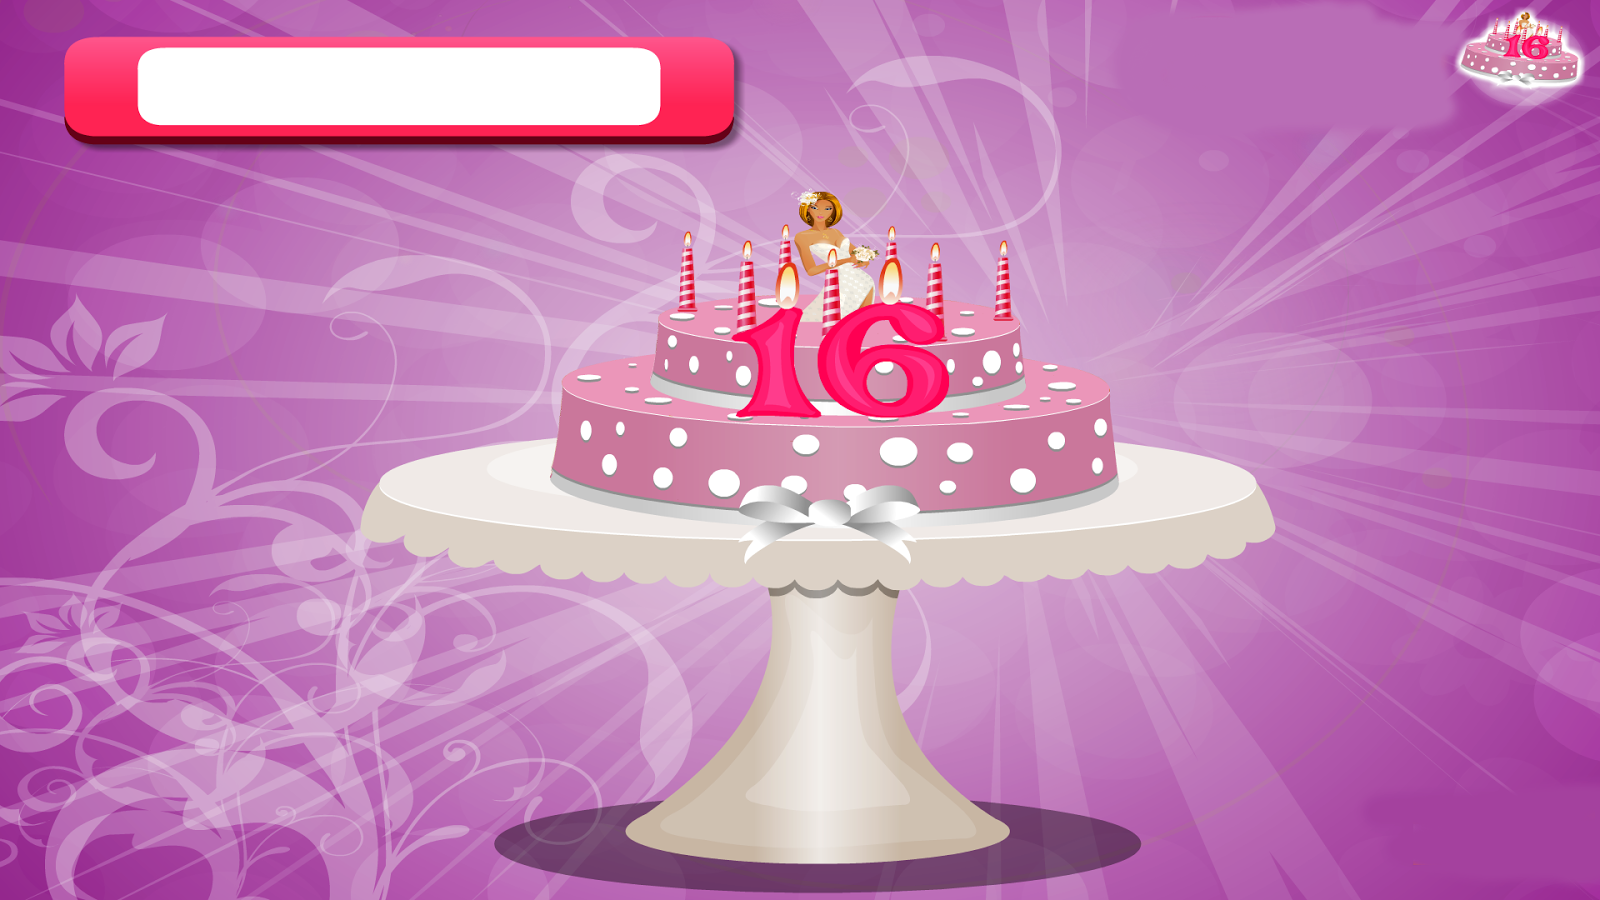 Google Images Of Birthday Cake : Birthday Cake Cooking Games - Android Apps on Google Play